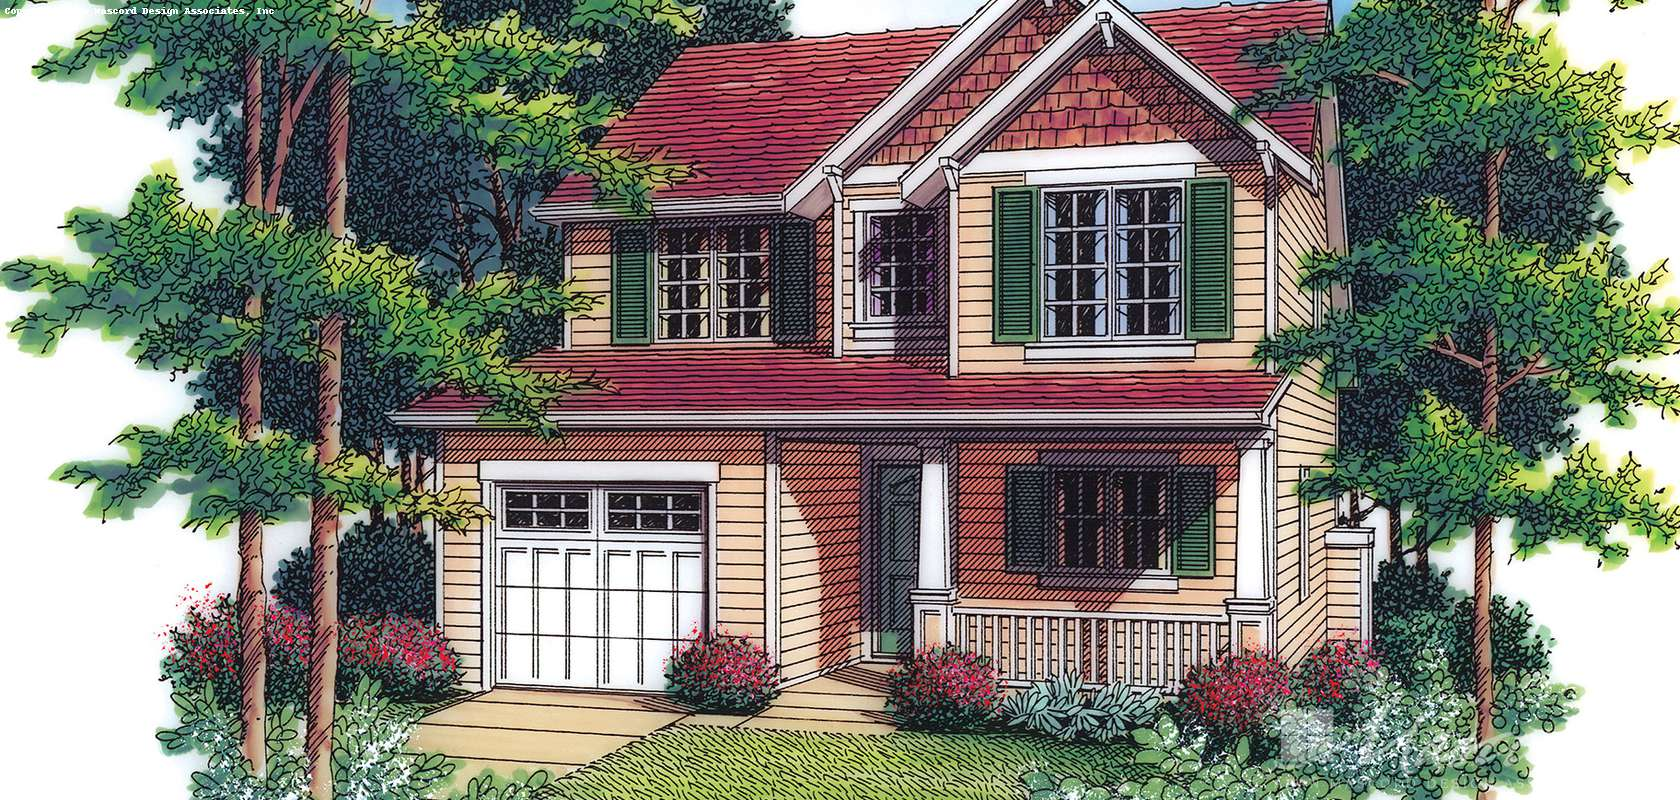 Mascord House Plan 2192: The Meredith